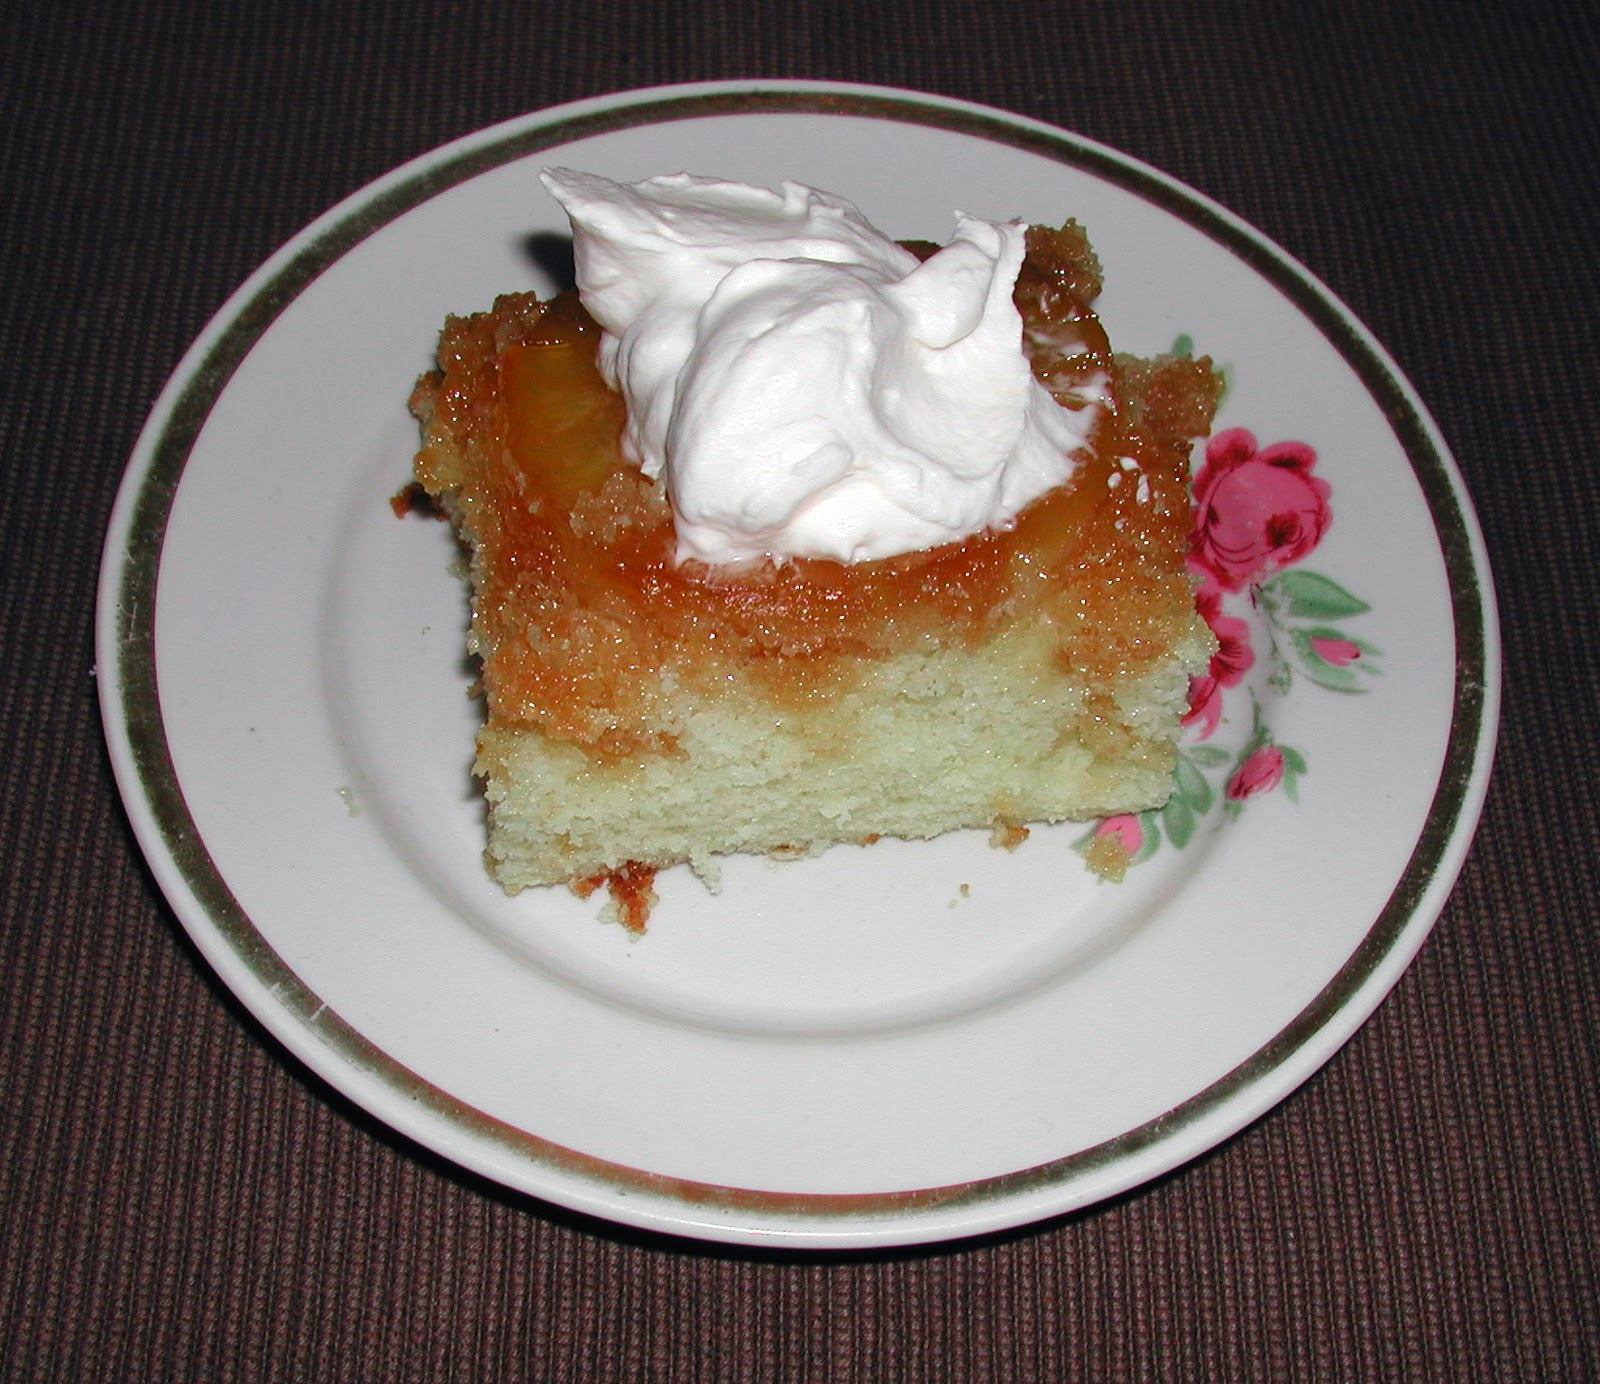 The Iowa Housewife: Pineapple-Upside Down Cake